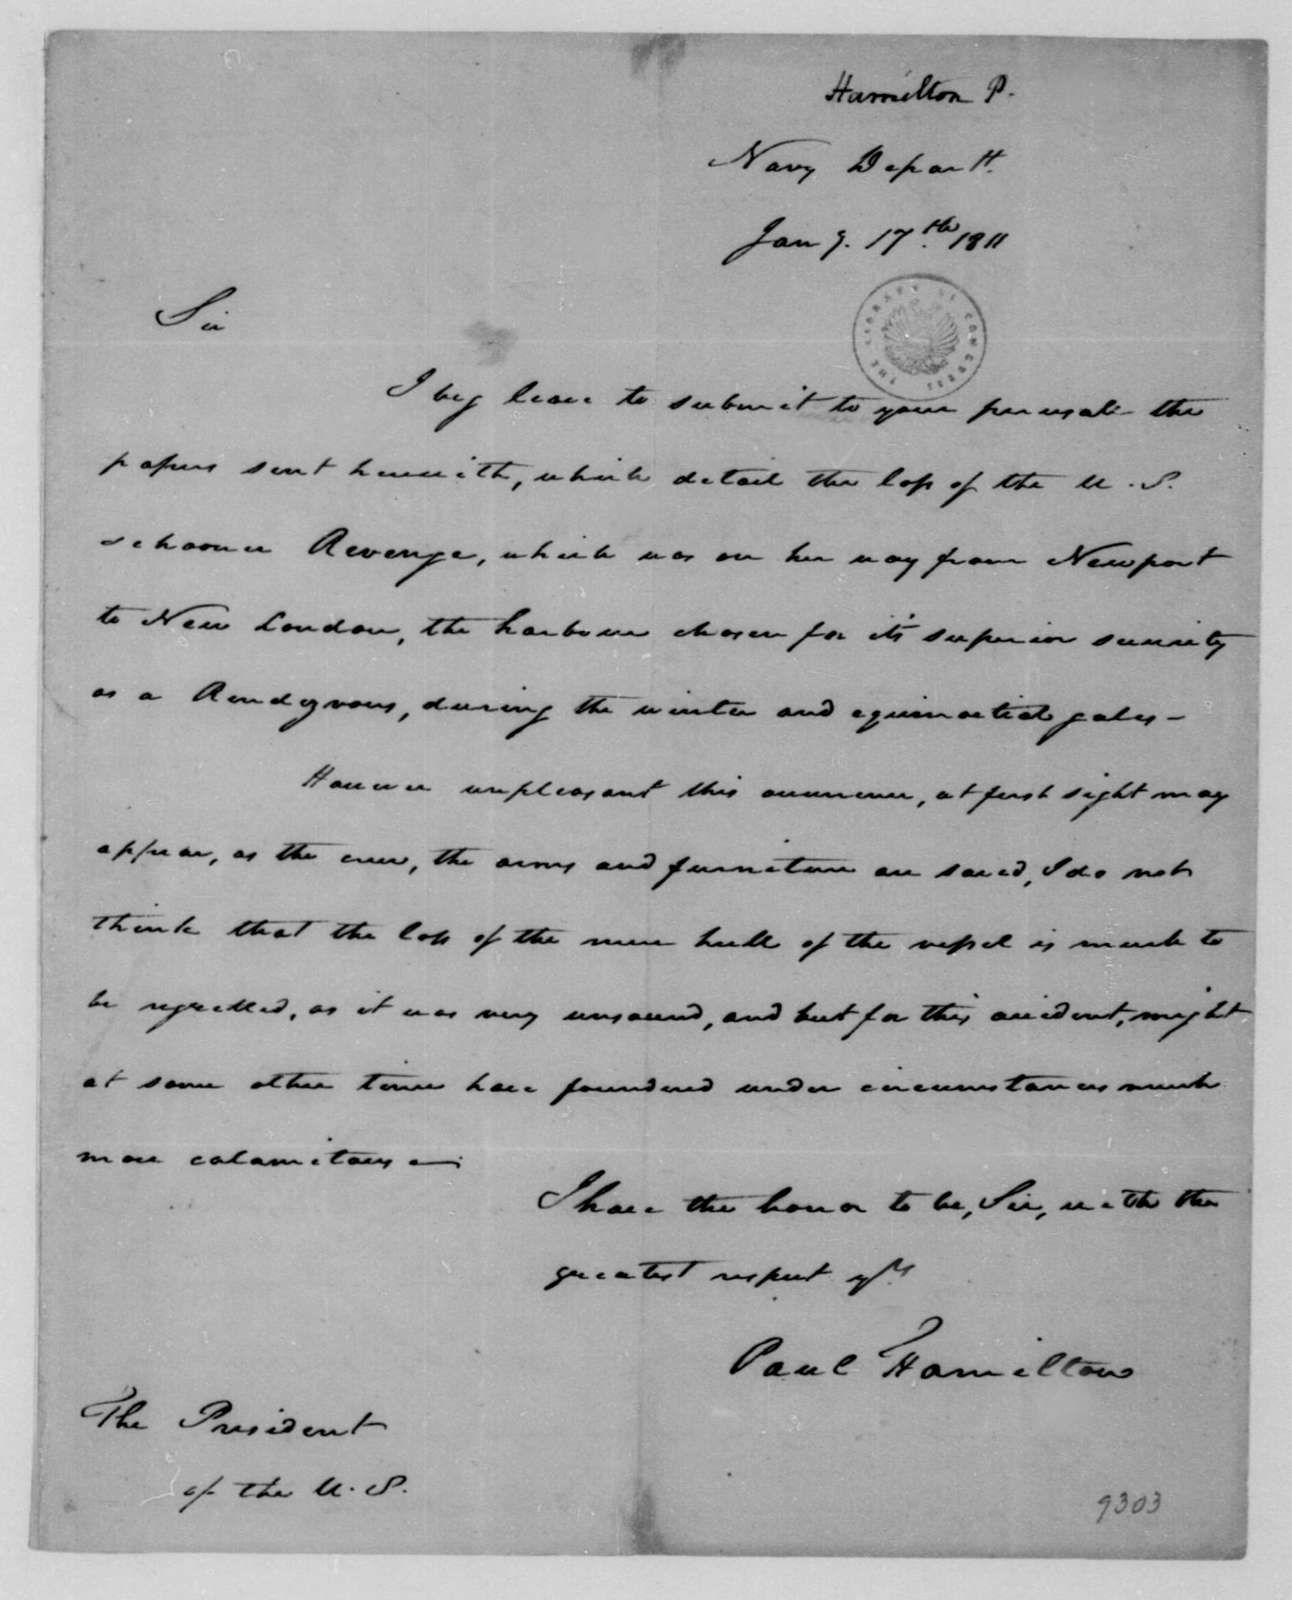 Paul Hamilton to James Madison, January 17, 1811.